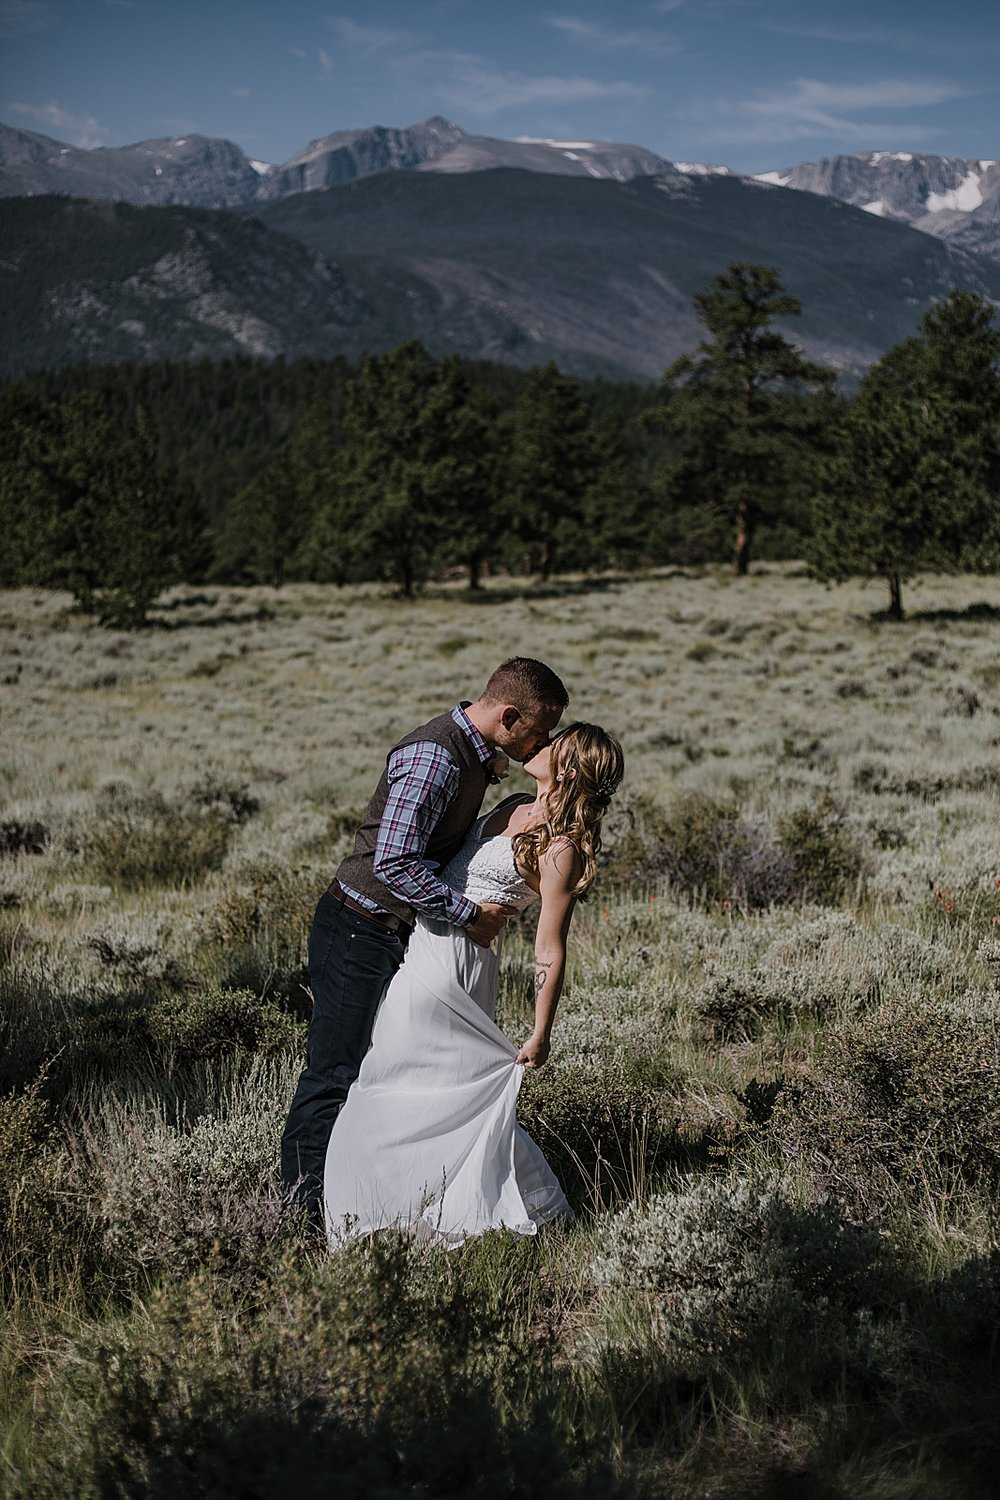 bride and groom dancing, RMNP elopement ceremony, rocky mountain national park elopement, 3M curves elopement, self solemnizing, self solemnization, long's peak, summer elopement, estes park elopement